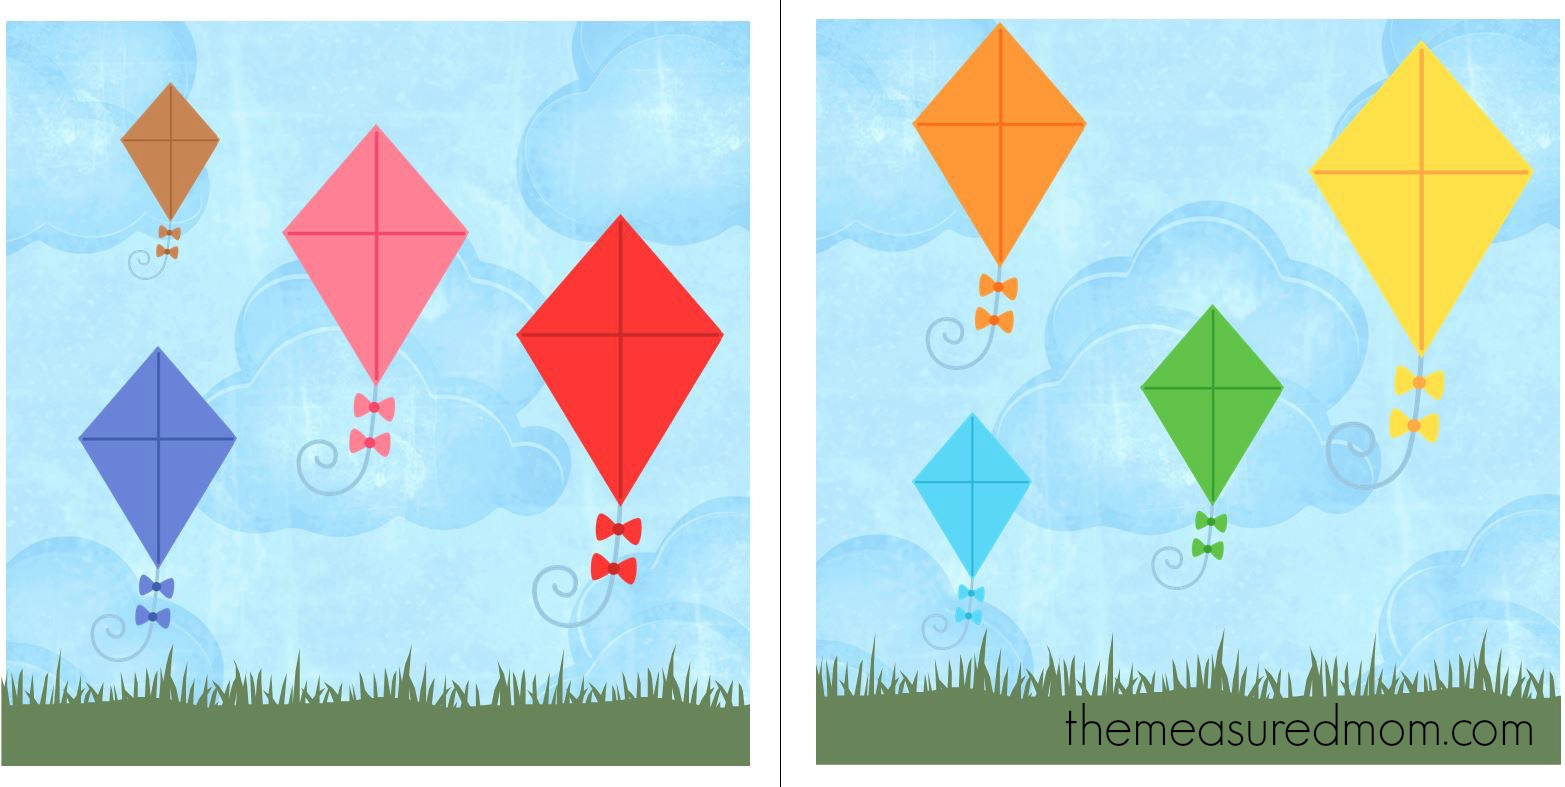 Free File Folder Game For Preschoolers: Kites! - The Measured Mom - File Folder Games For Toddlers Free Printable